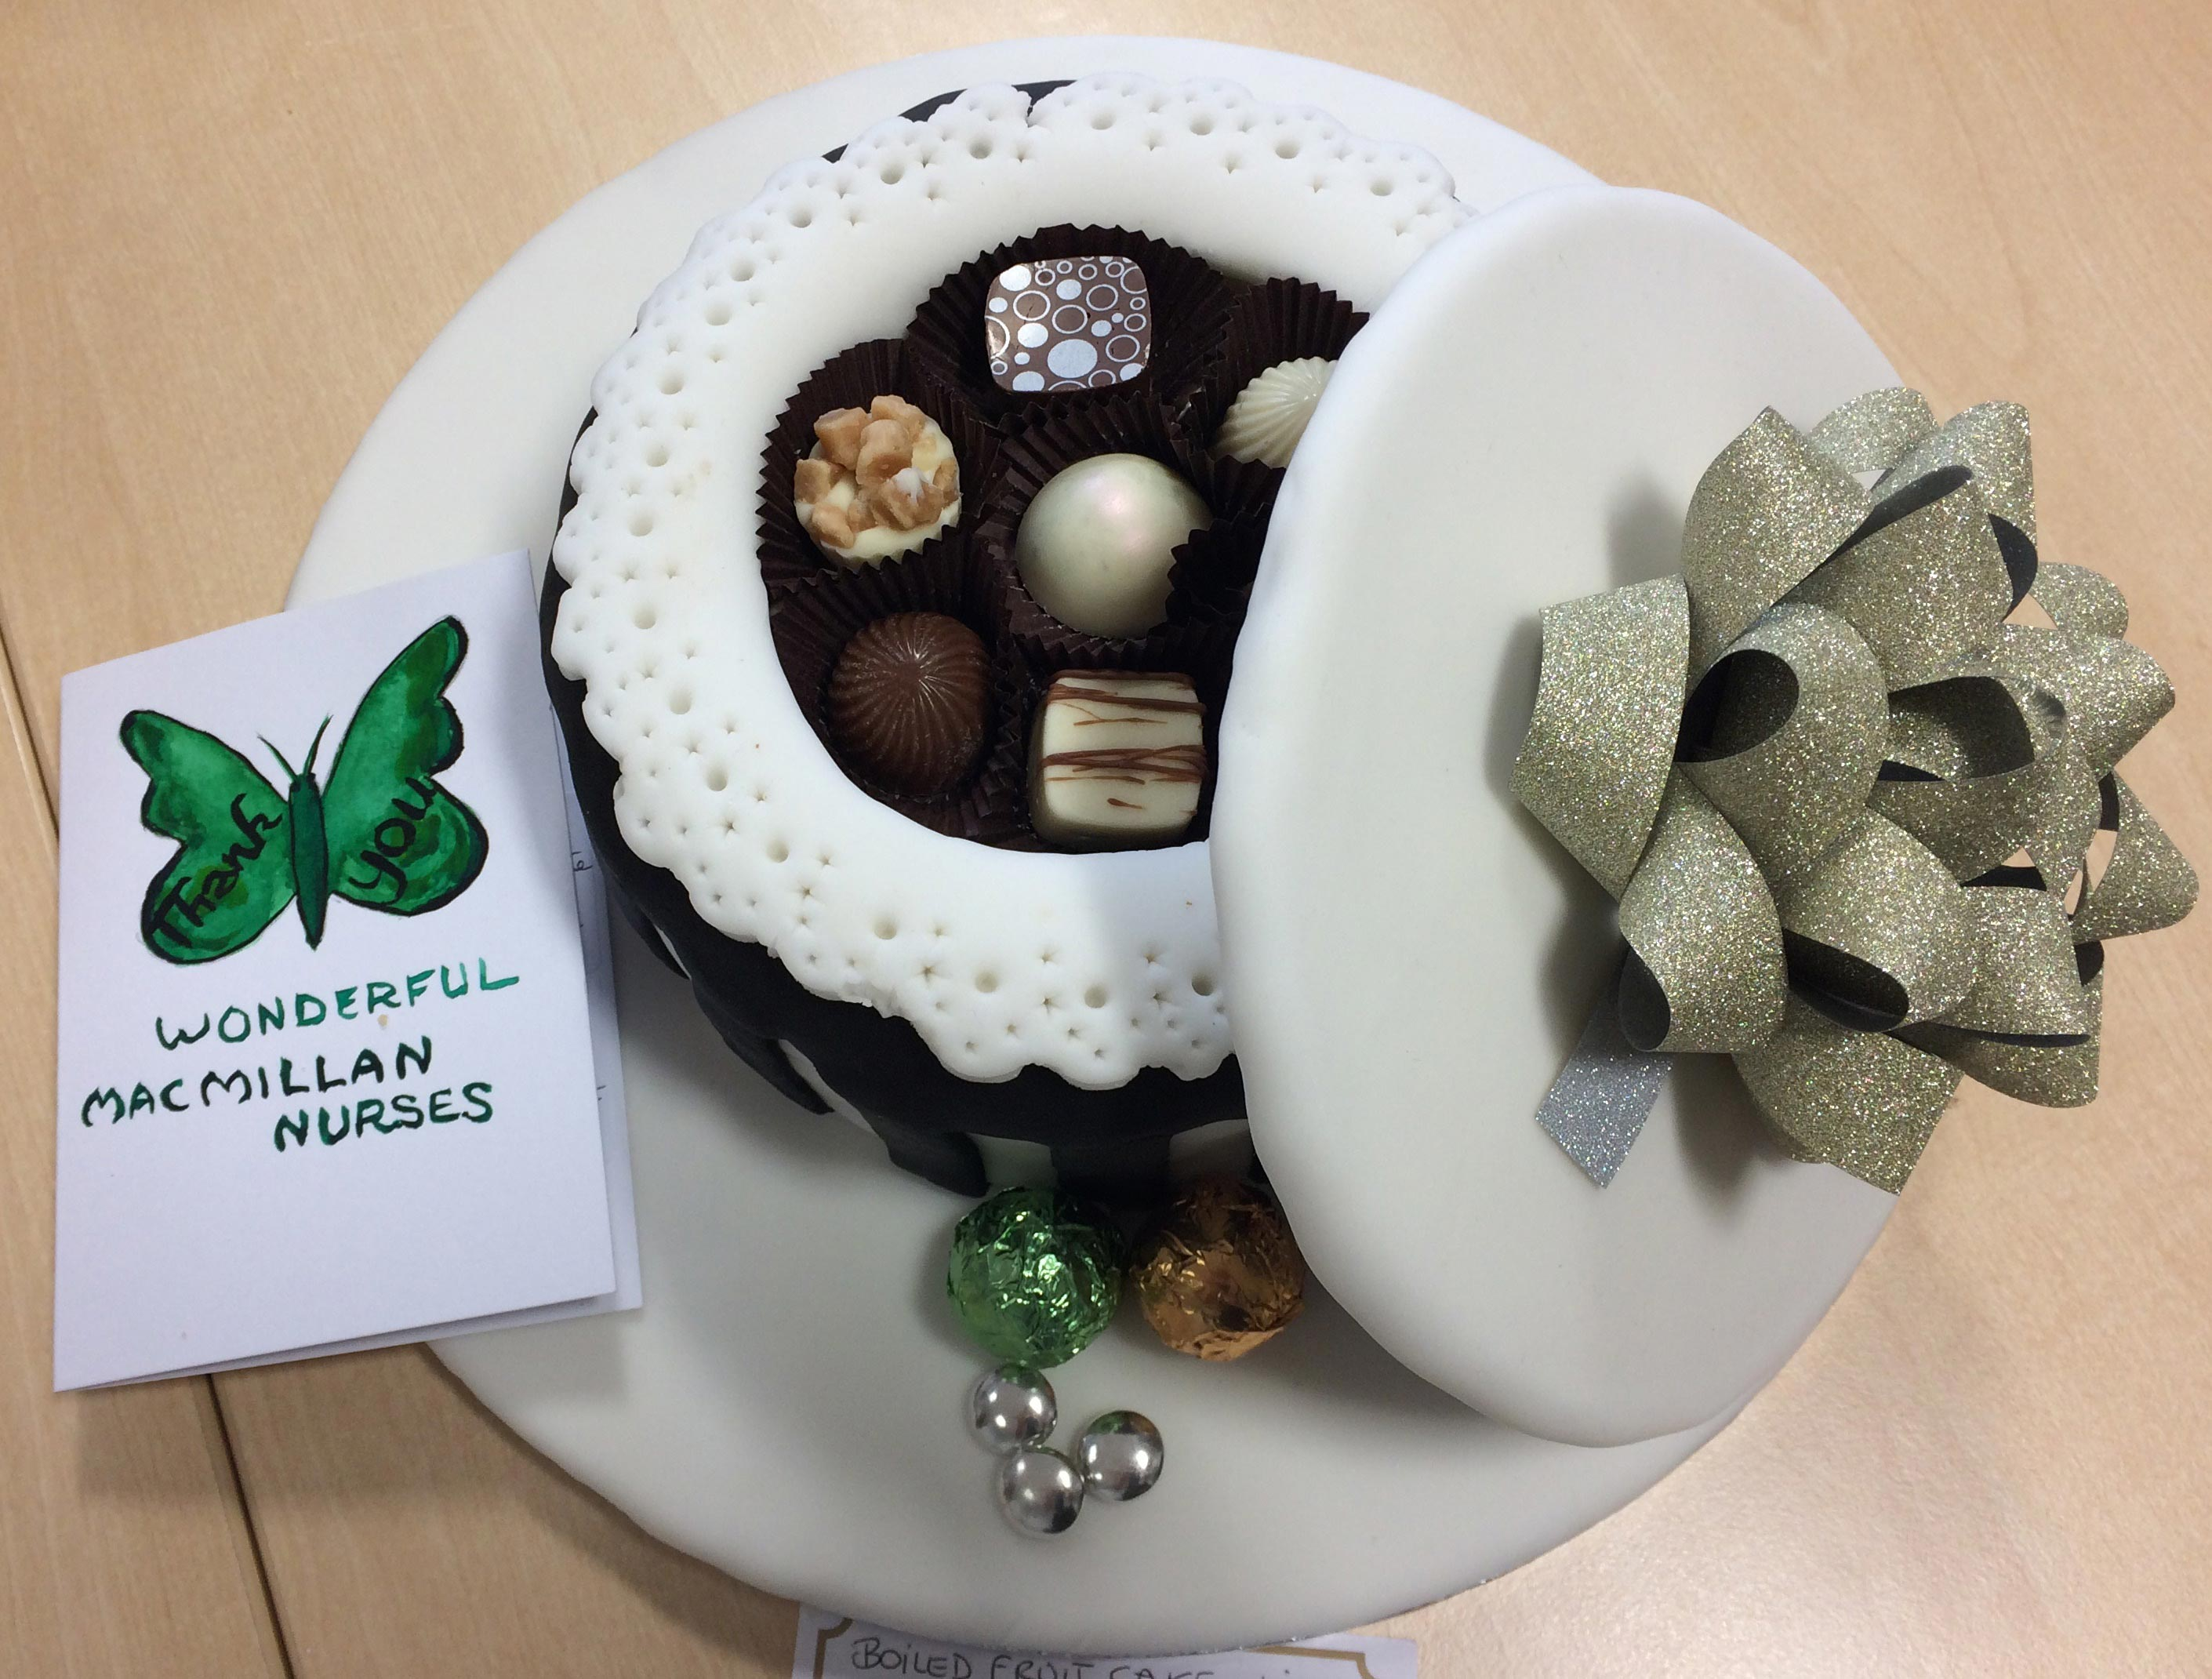 The Great Spire Bake Off in aid of Macmillan